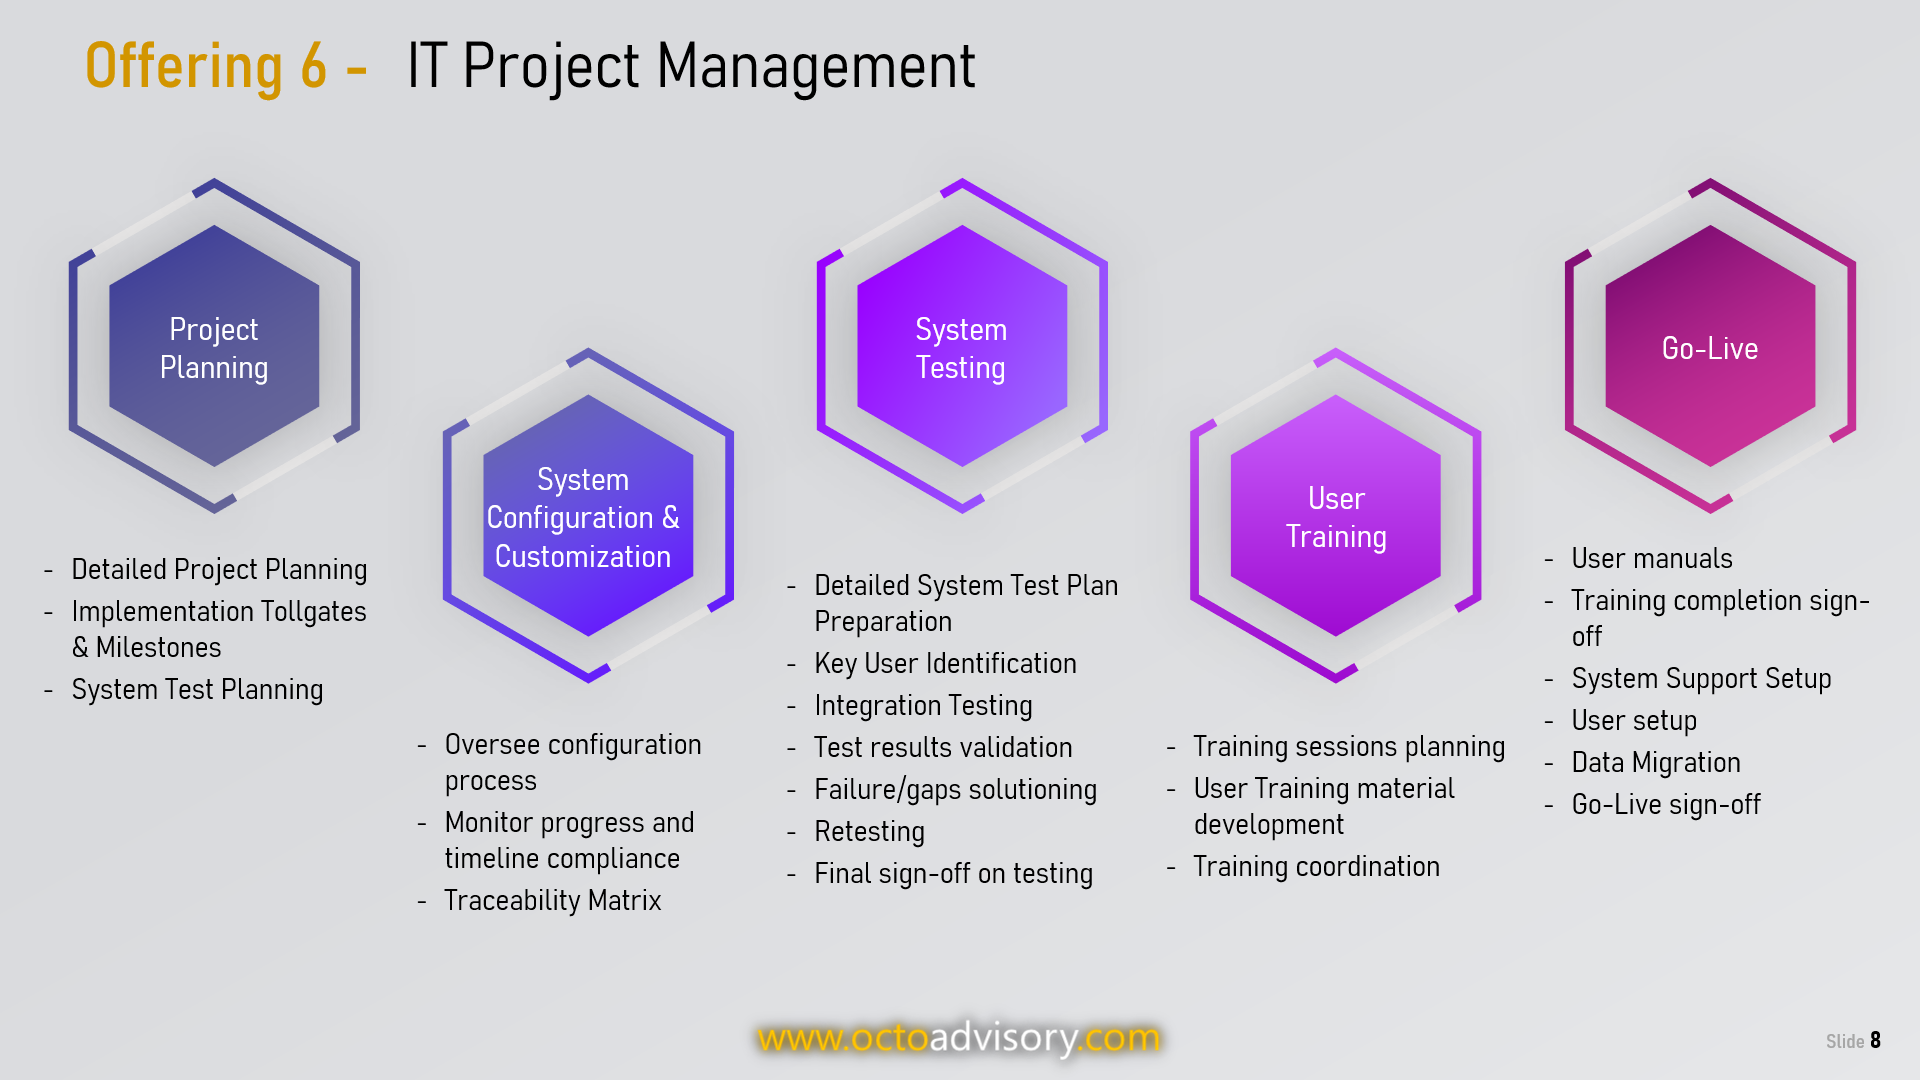 OCTO Project Management Services